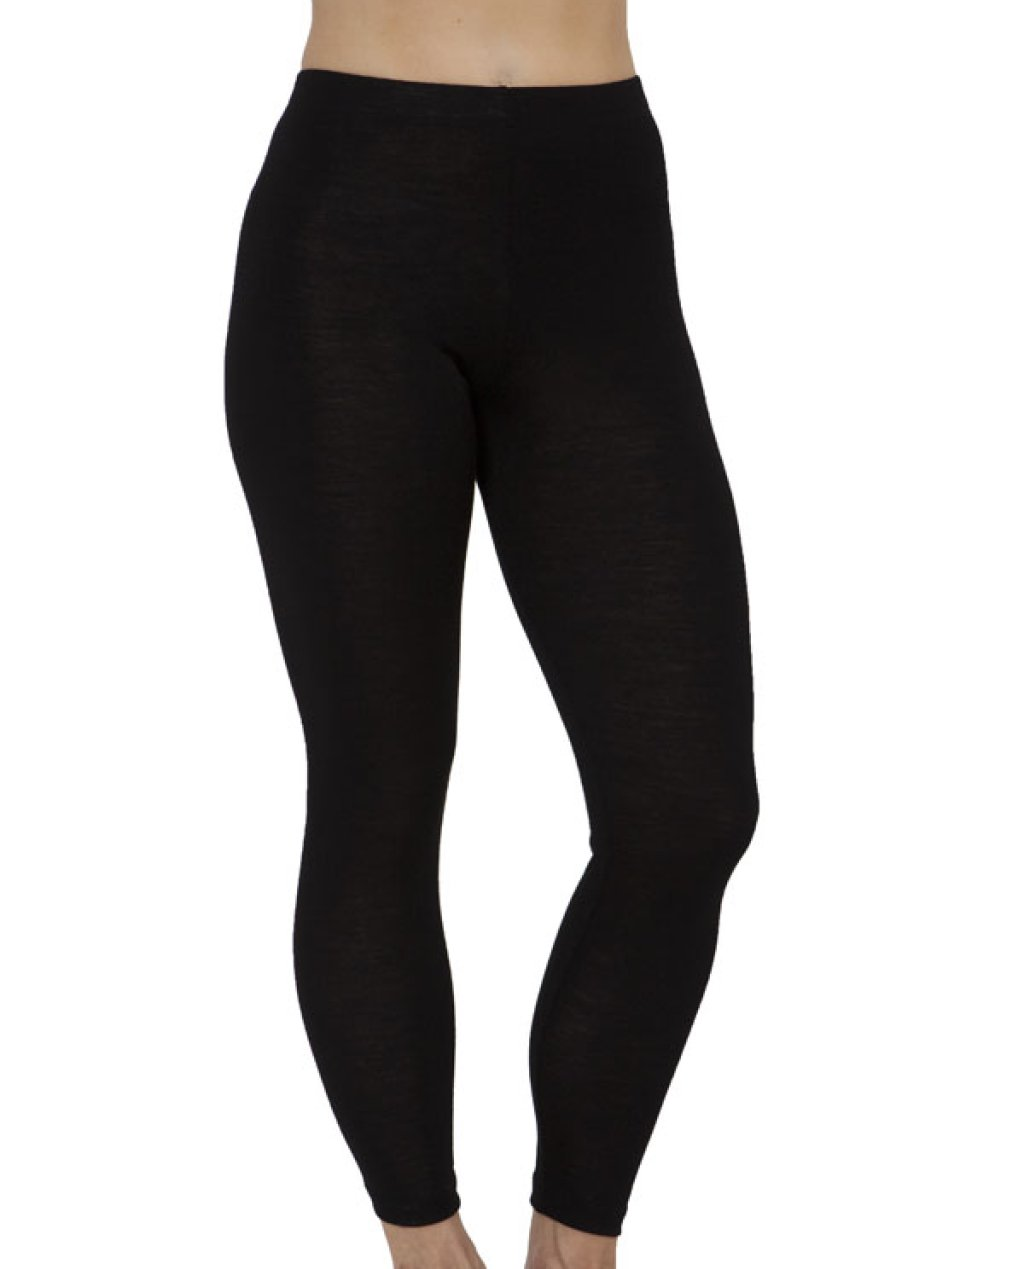 Thermal Underwear - Pure Merino Wool 200gsm Legging (Black)